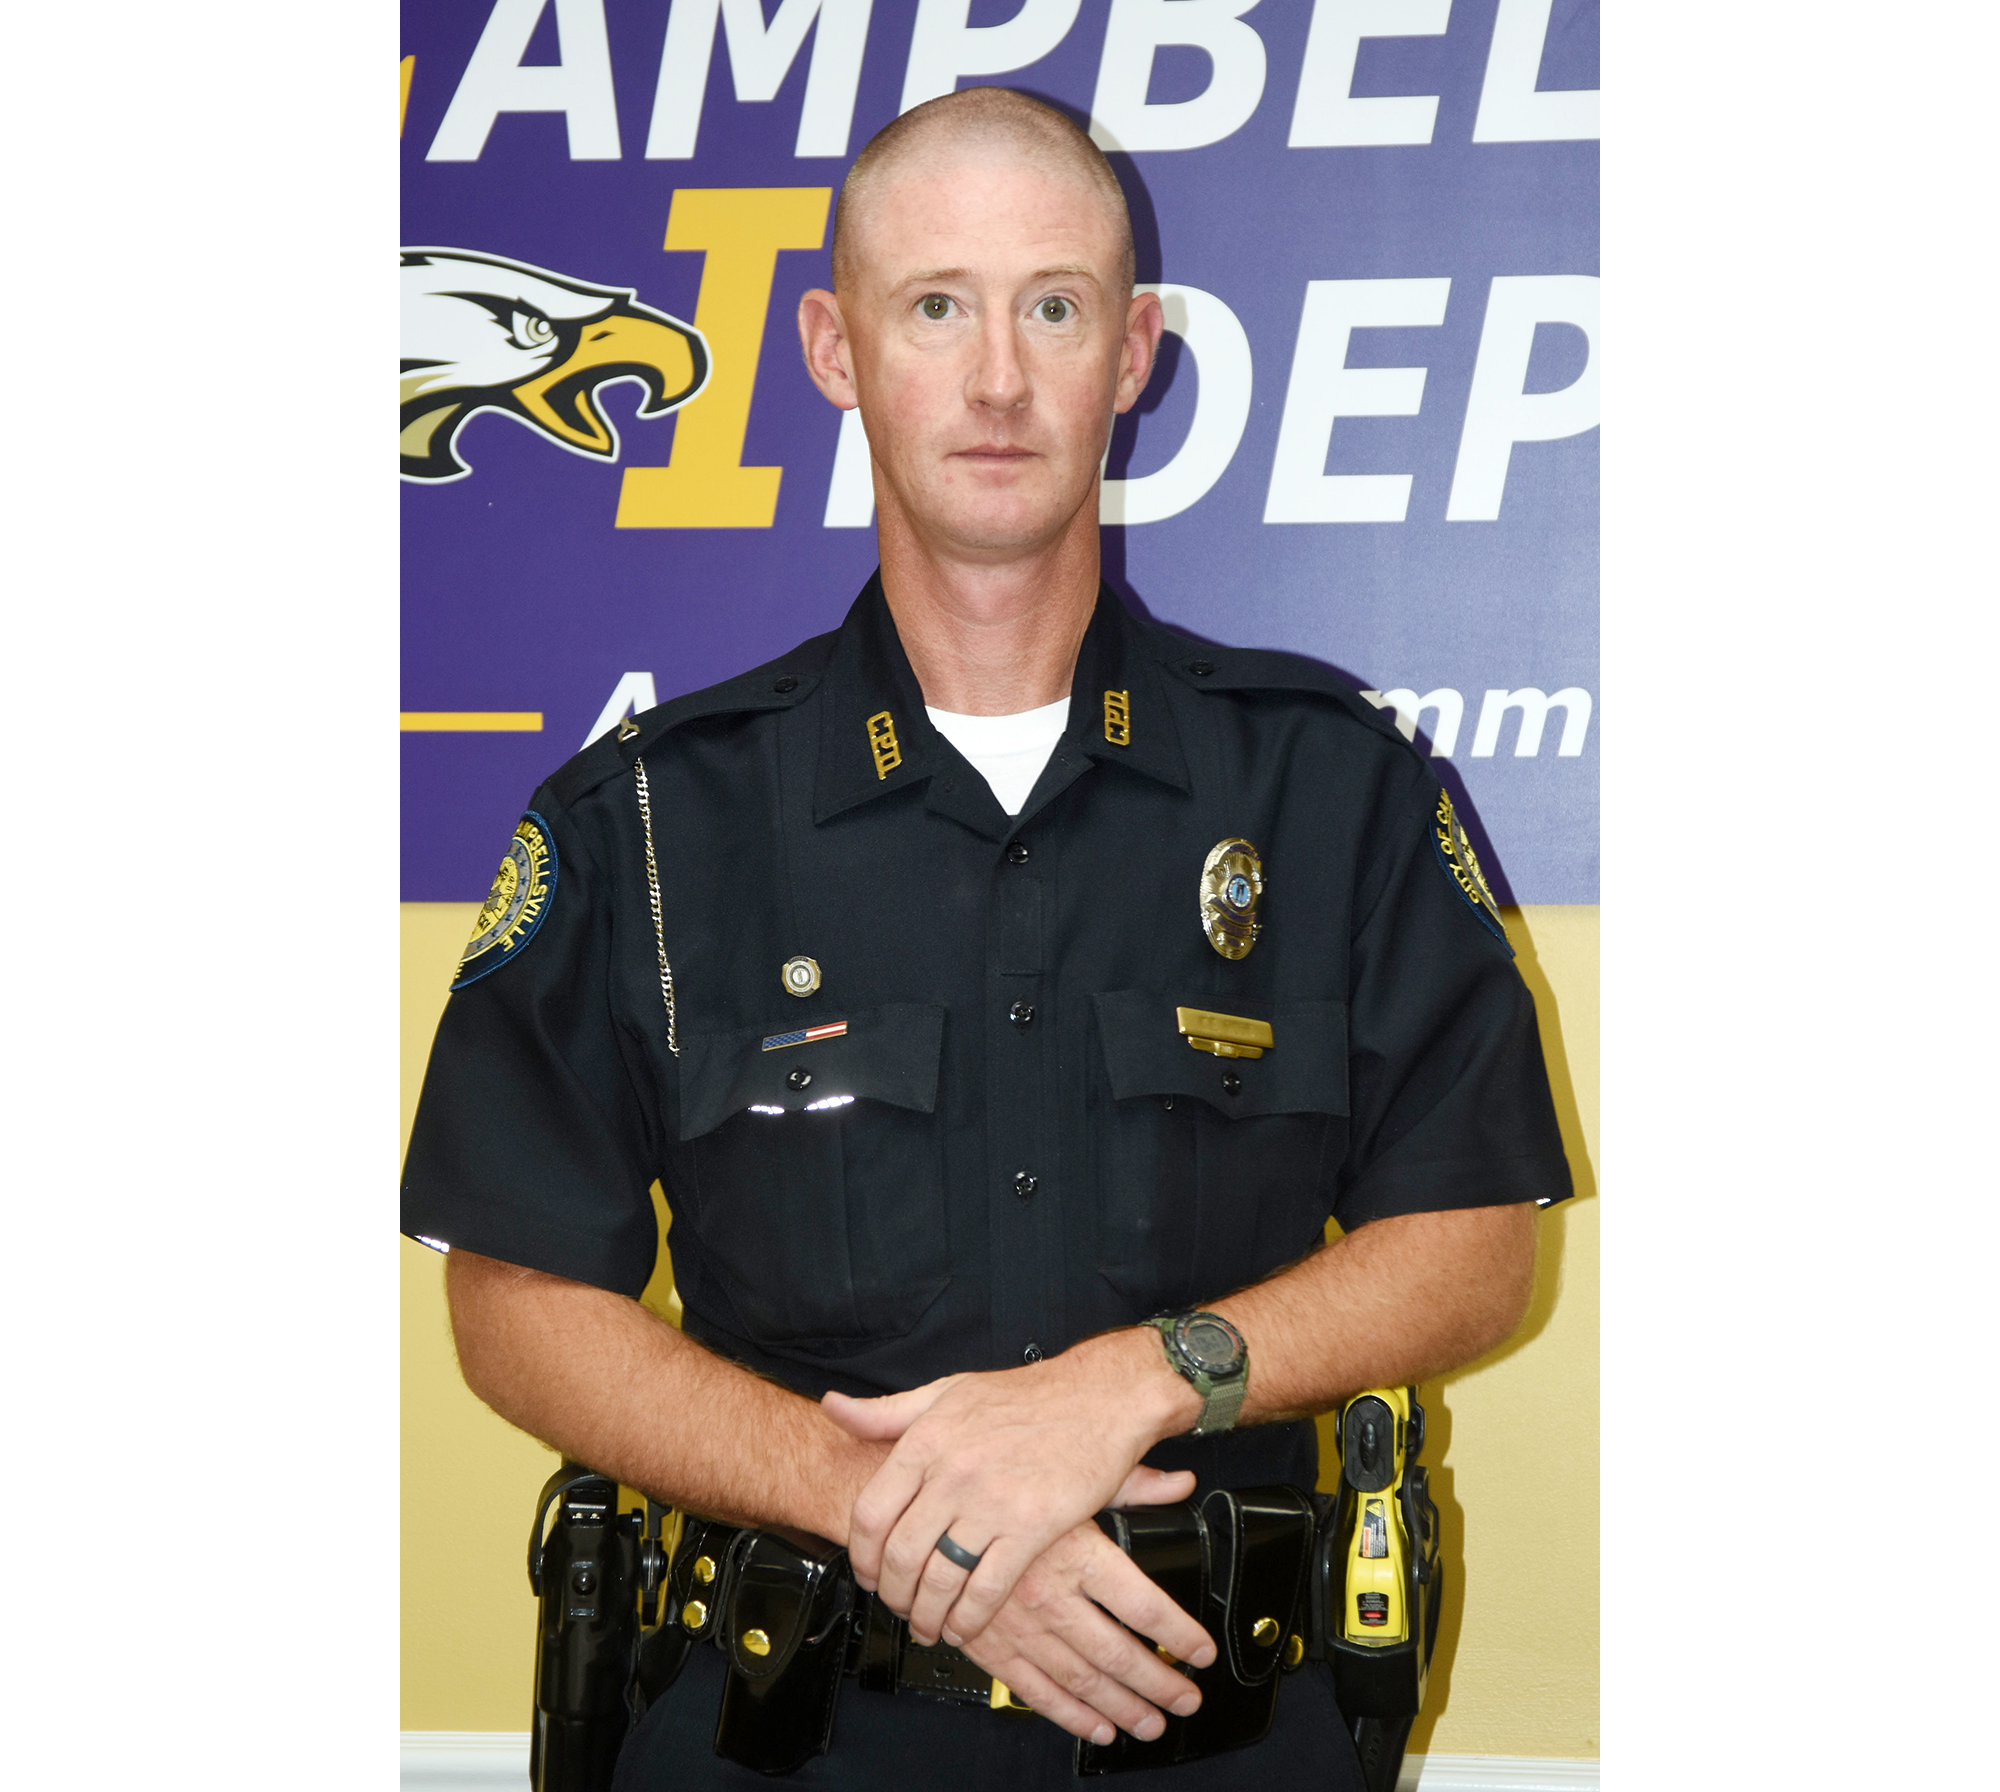 Campbellsville Independent Schools' students will begin the 2018-2019 school year in a few weeks, and will see a new face in the hallways.    CIS has contracted with Campbellsville Police to employ a School Resource Officer, who will be stationed at the Campbellsville High School campus.    Officer Charlie Houk has been assigned to the SRO post.    While Houk's office will be at the CHS campus, he will provide safety and security at Campbellsville elementary, middle and high schools.